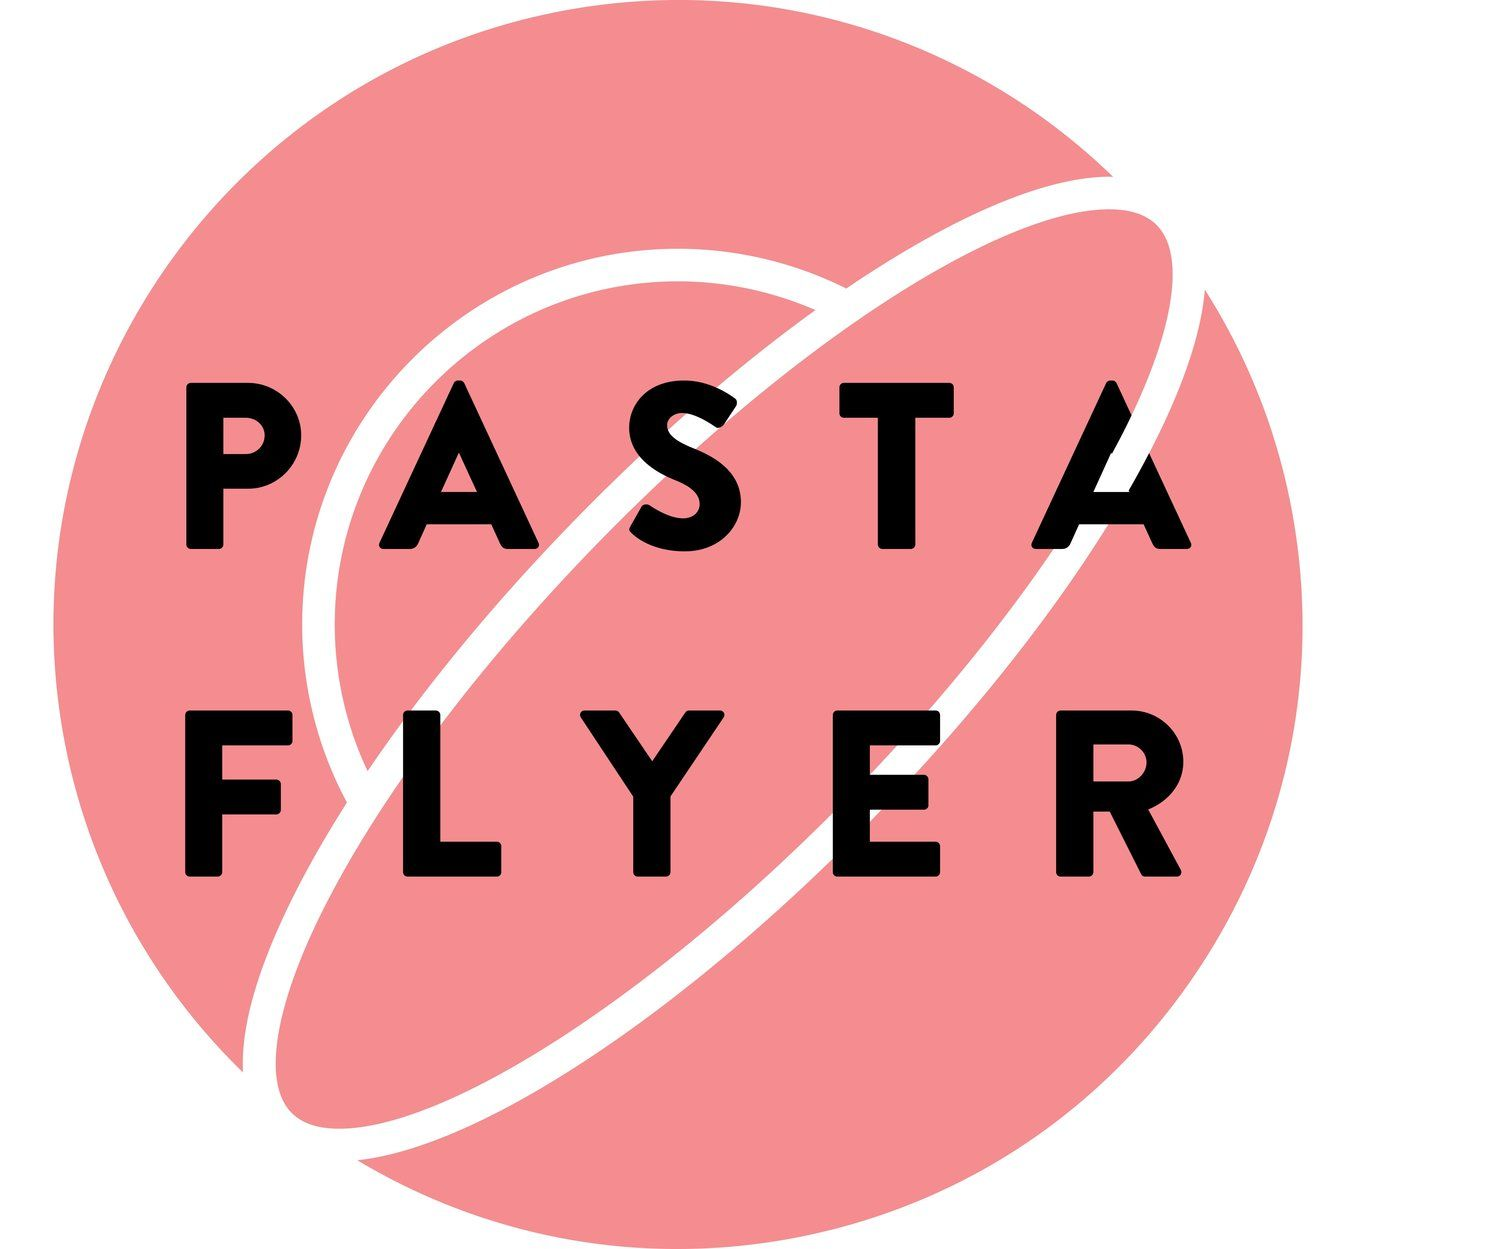 Downtown pasta flyer where all dishes are under 10 and